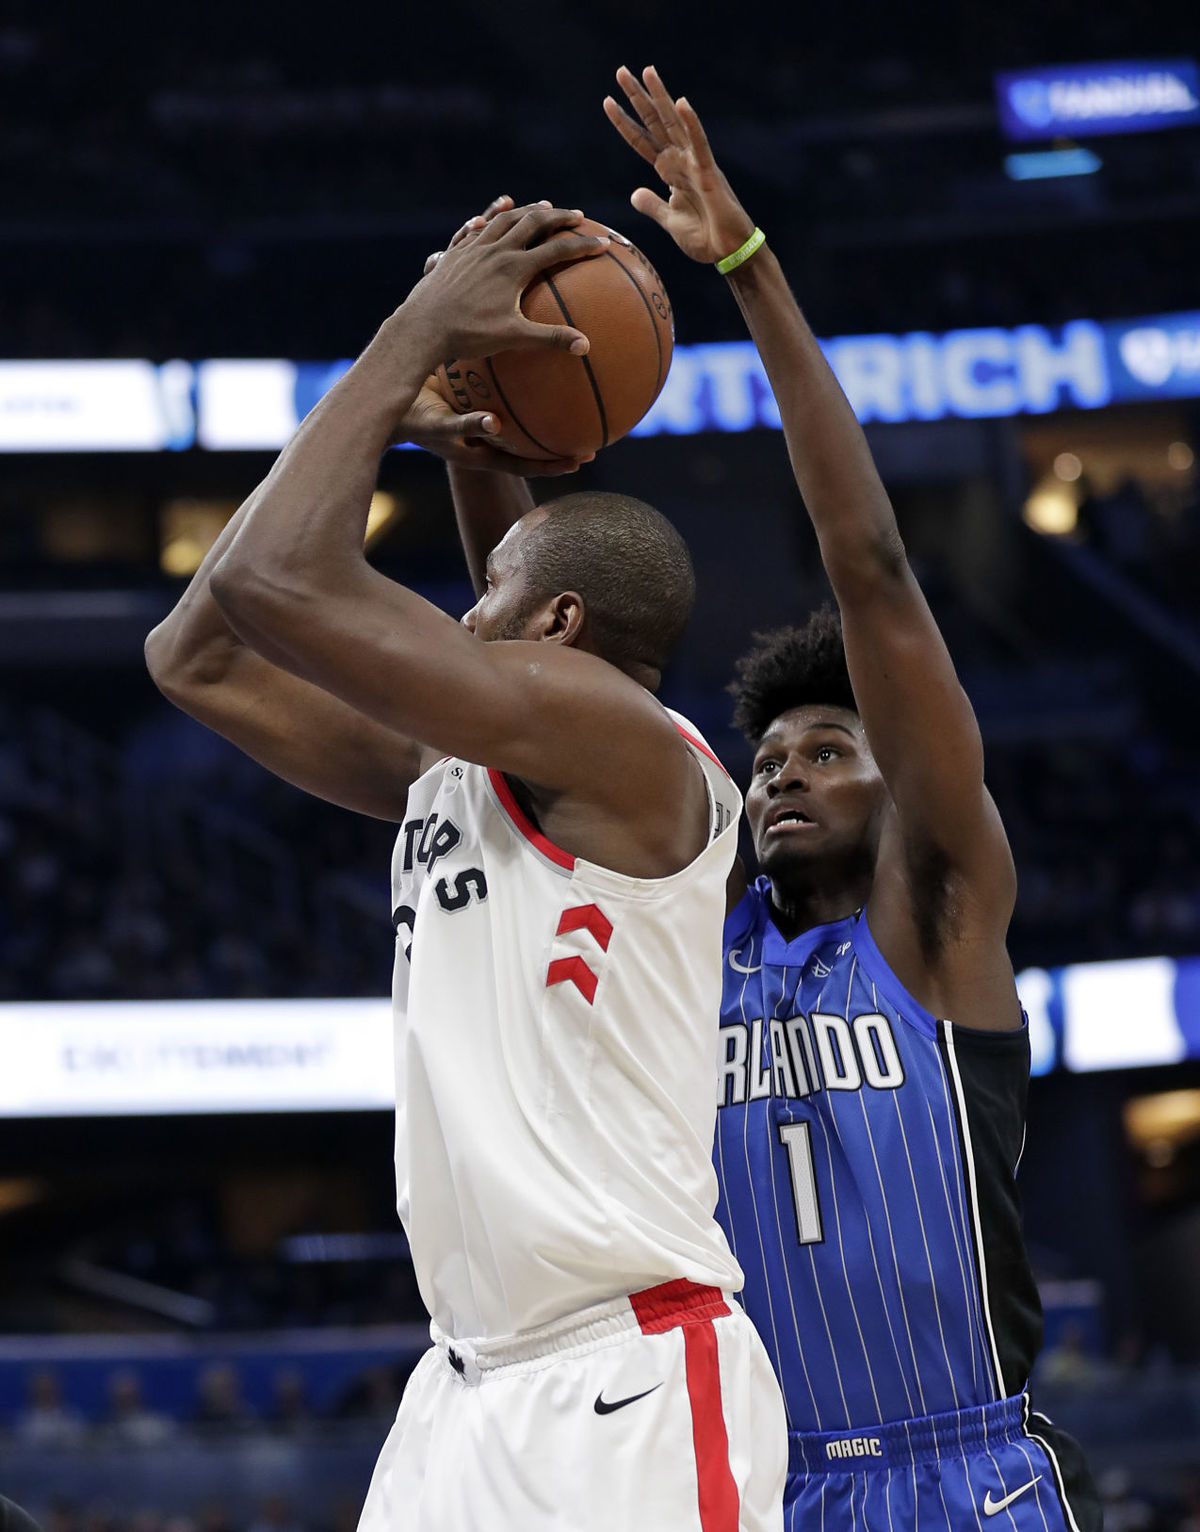 ORLANDO, Fla. (FNN SPORTS) - Despite a strong performance for three quarters, the Magic couldn't hold the Raptors. Photo: John Raoux/AP.